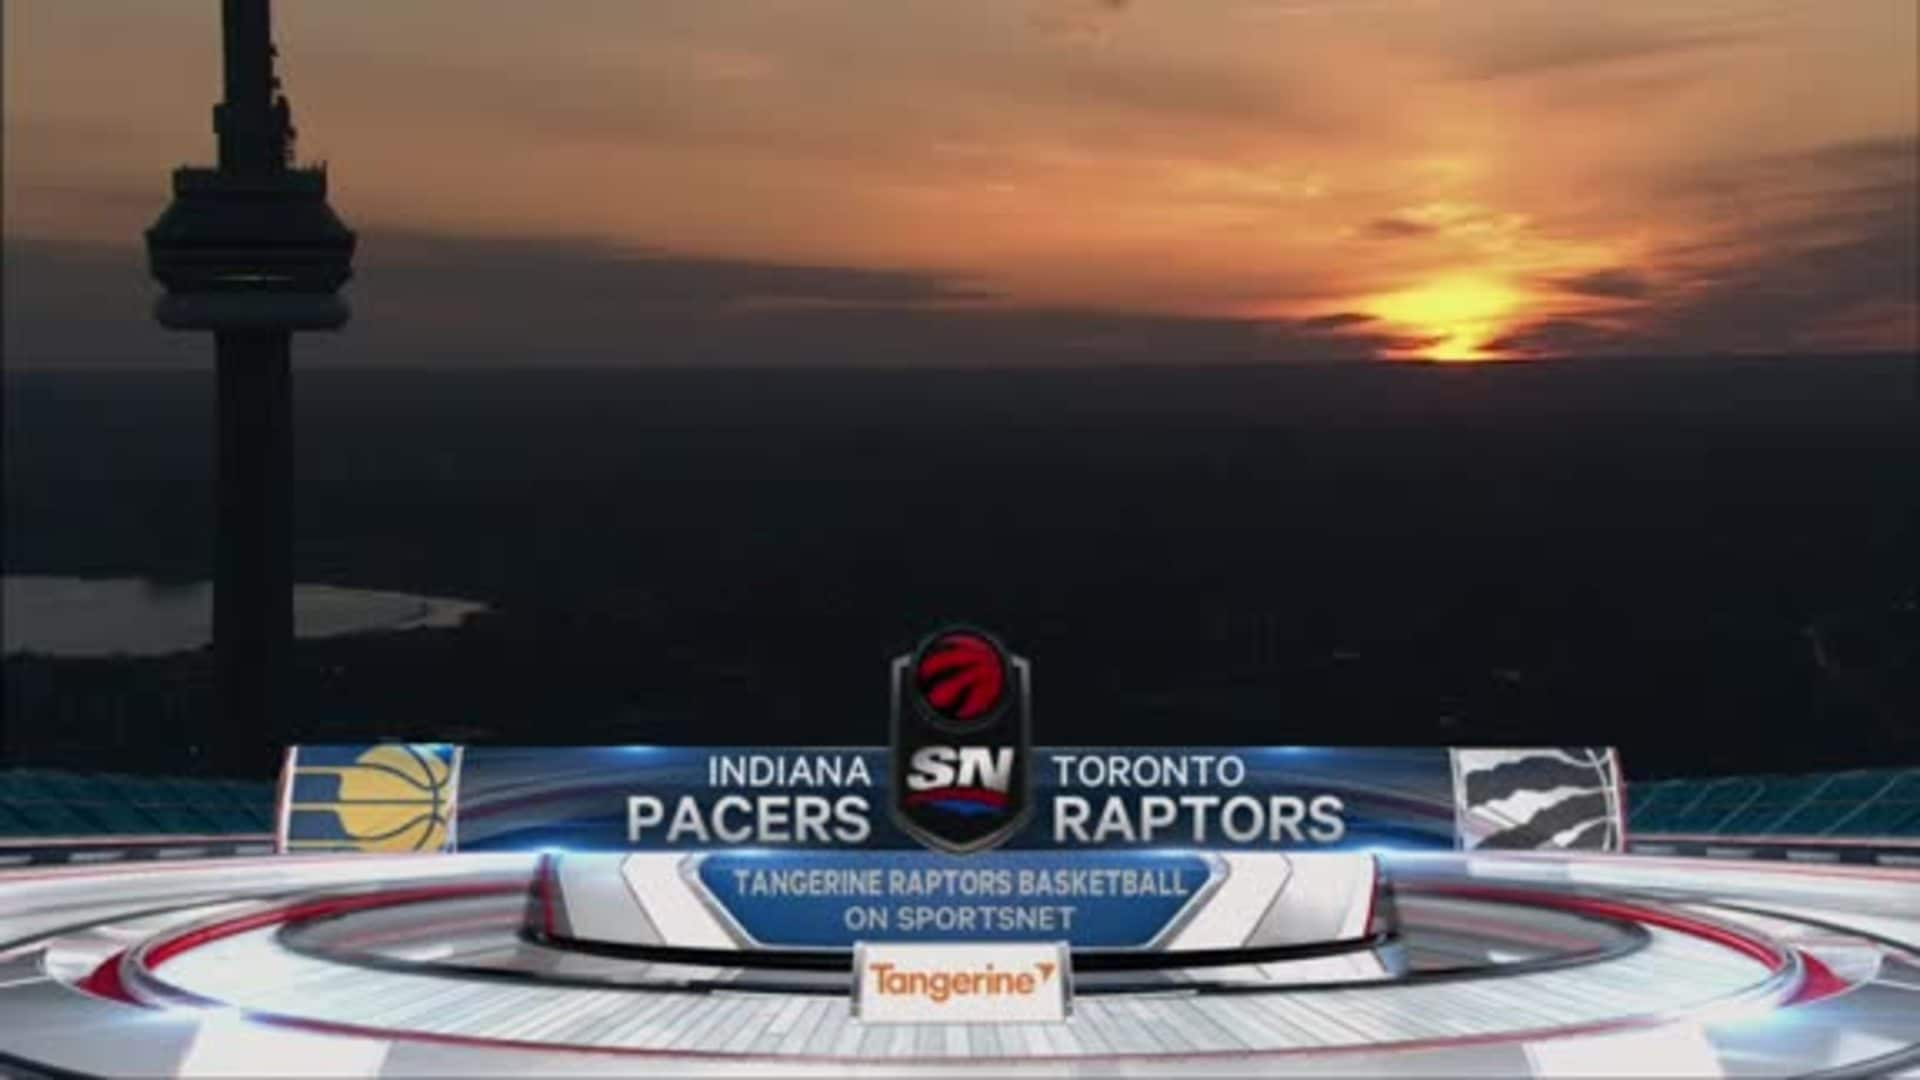 Game Highlights: Raptors vs Pacers - February 23, 2020